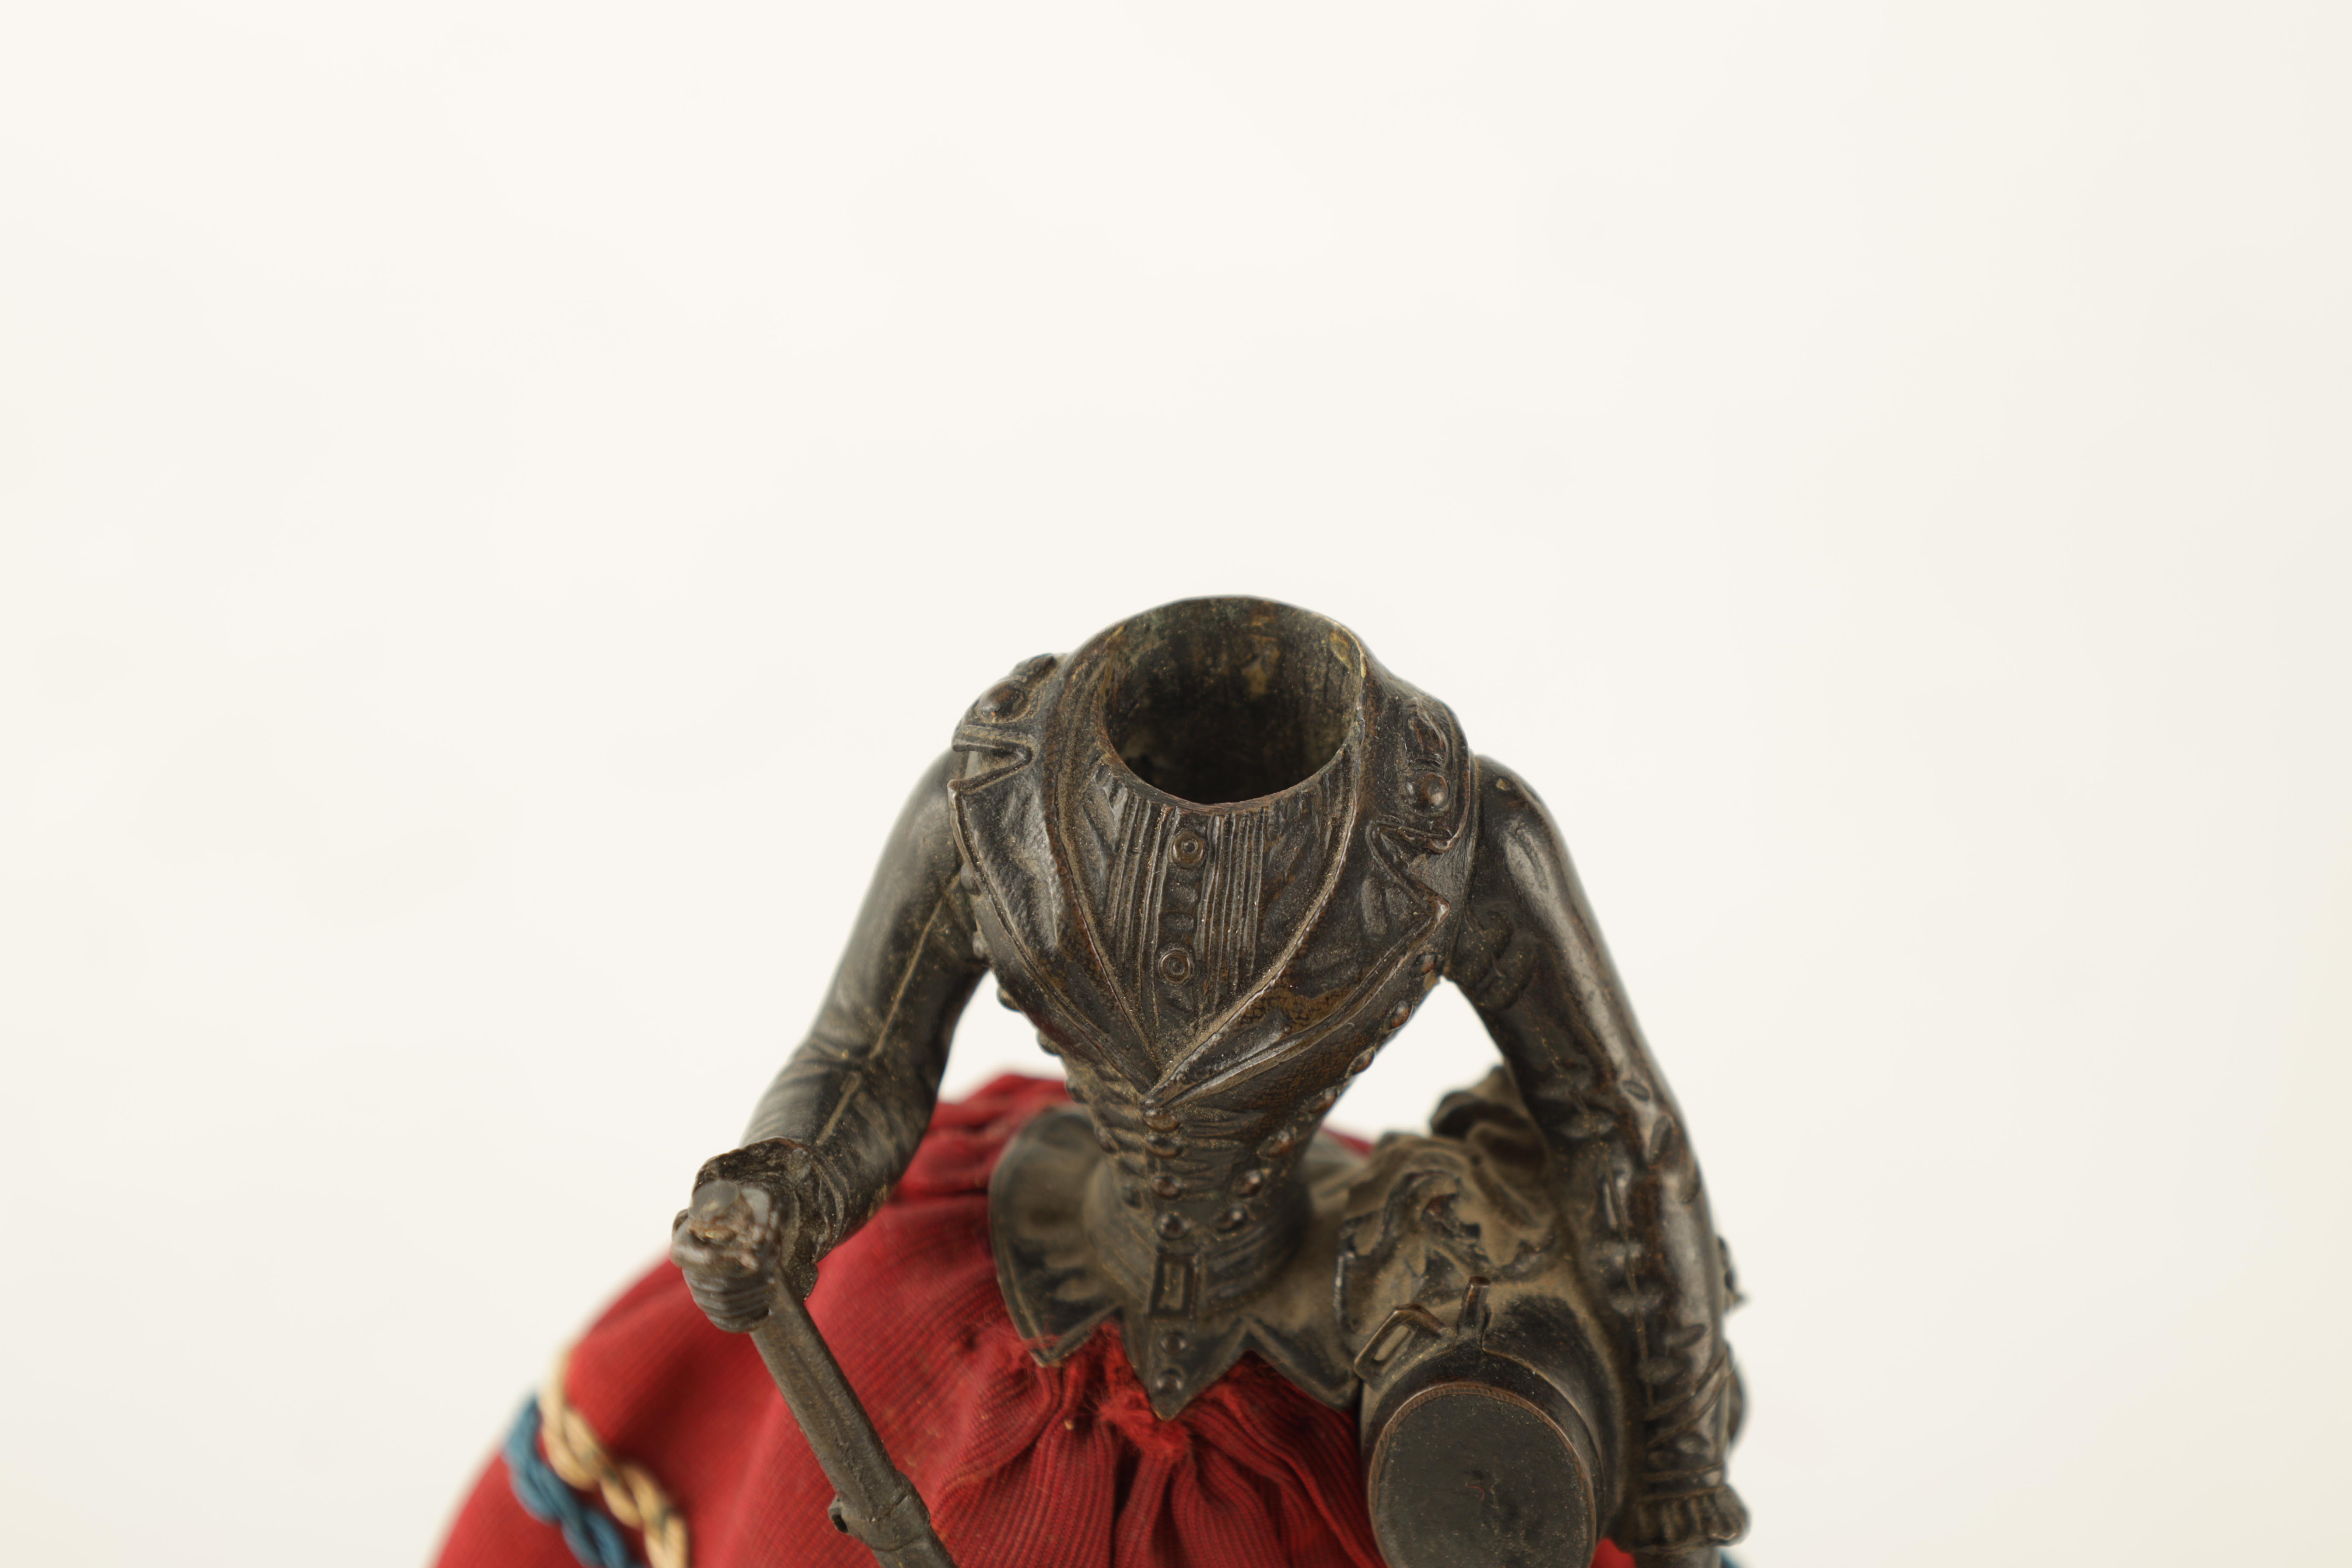 A LATE 19TH CENTURY NOVELTY BRONZE DESK COMPENDIUM DEPICTING A LADY HOLDING A RIFFLE with red - Image 4 of 10